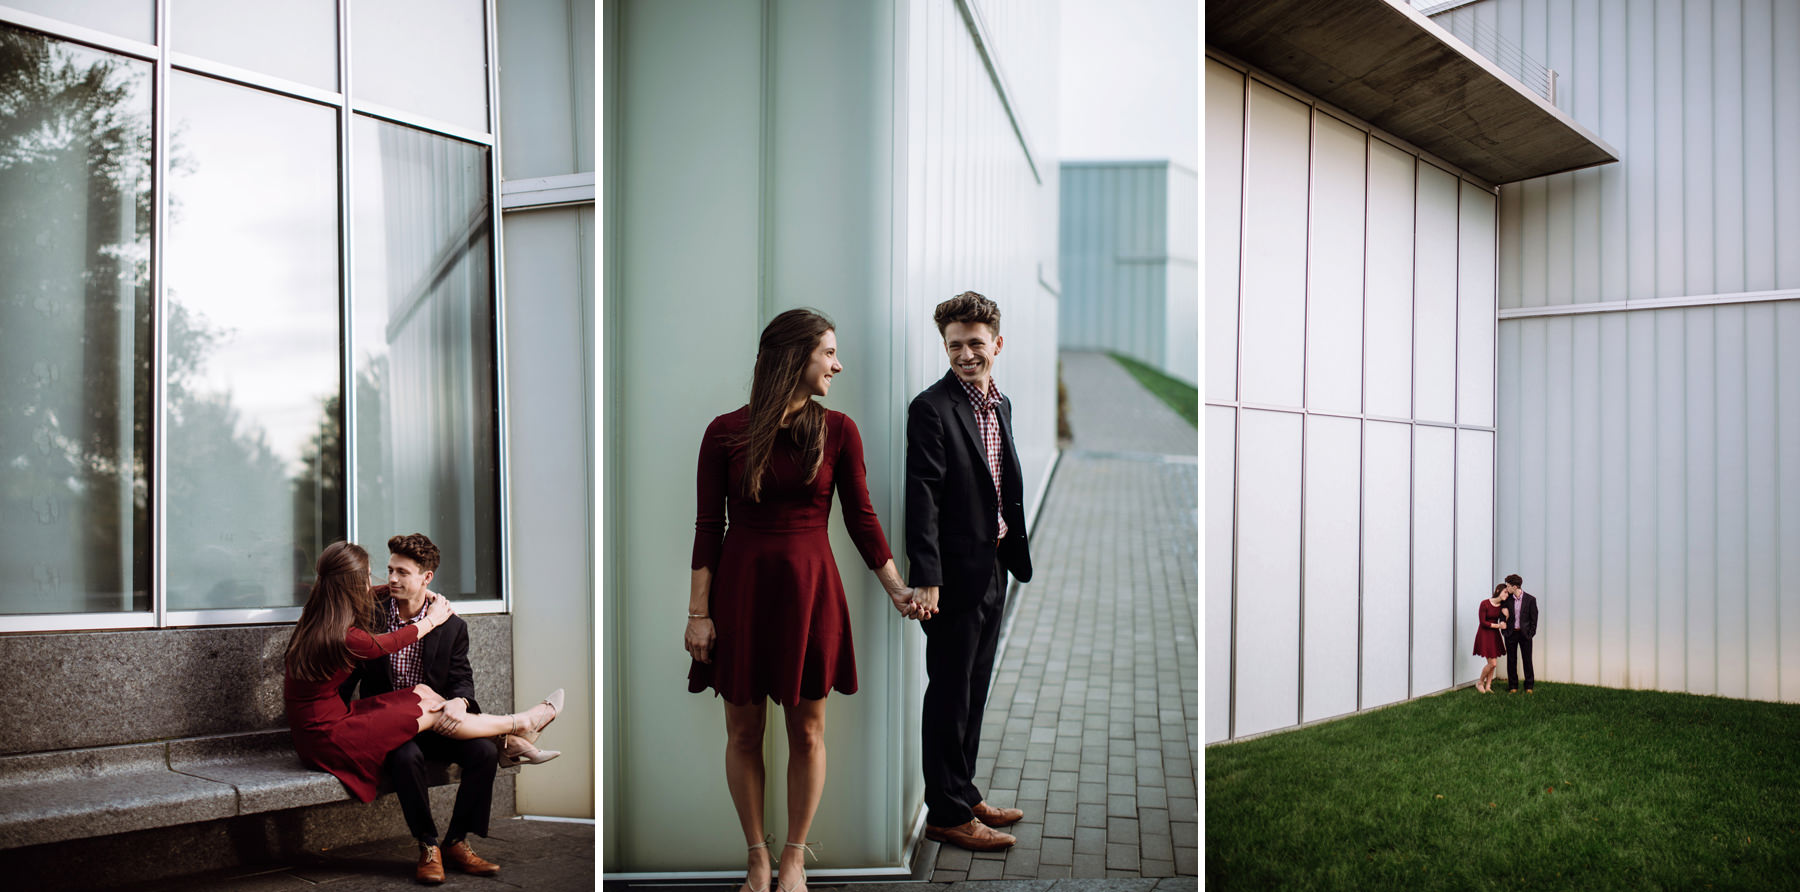 152_Nelson Atkins Art Museum Engagement Session Kansas City, Missouri_Kindling Wedding Photography.JPG